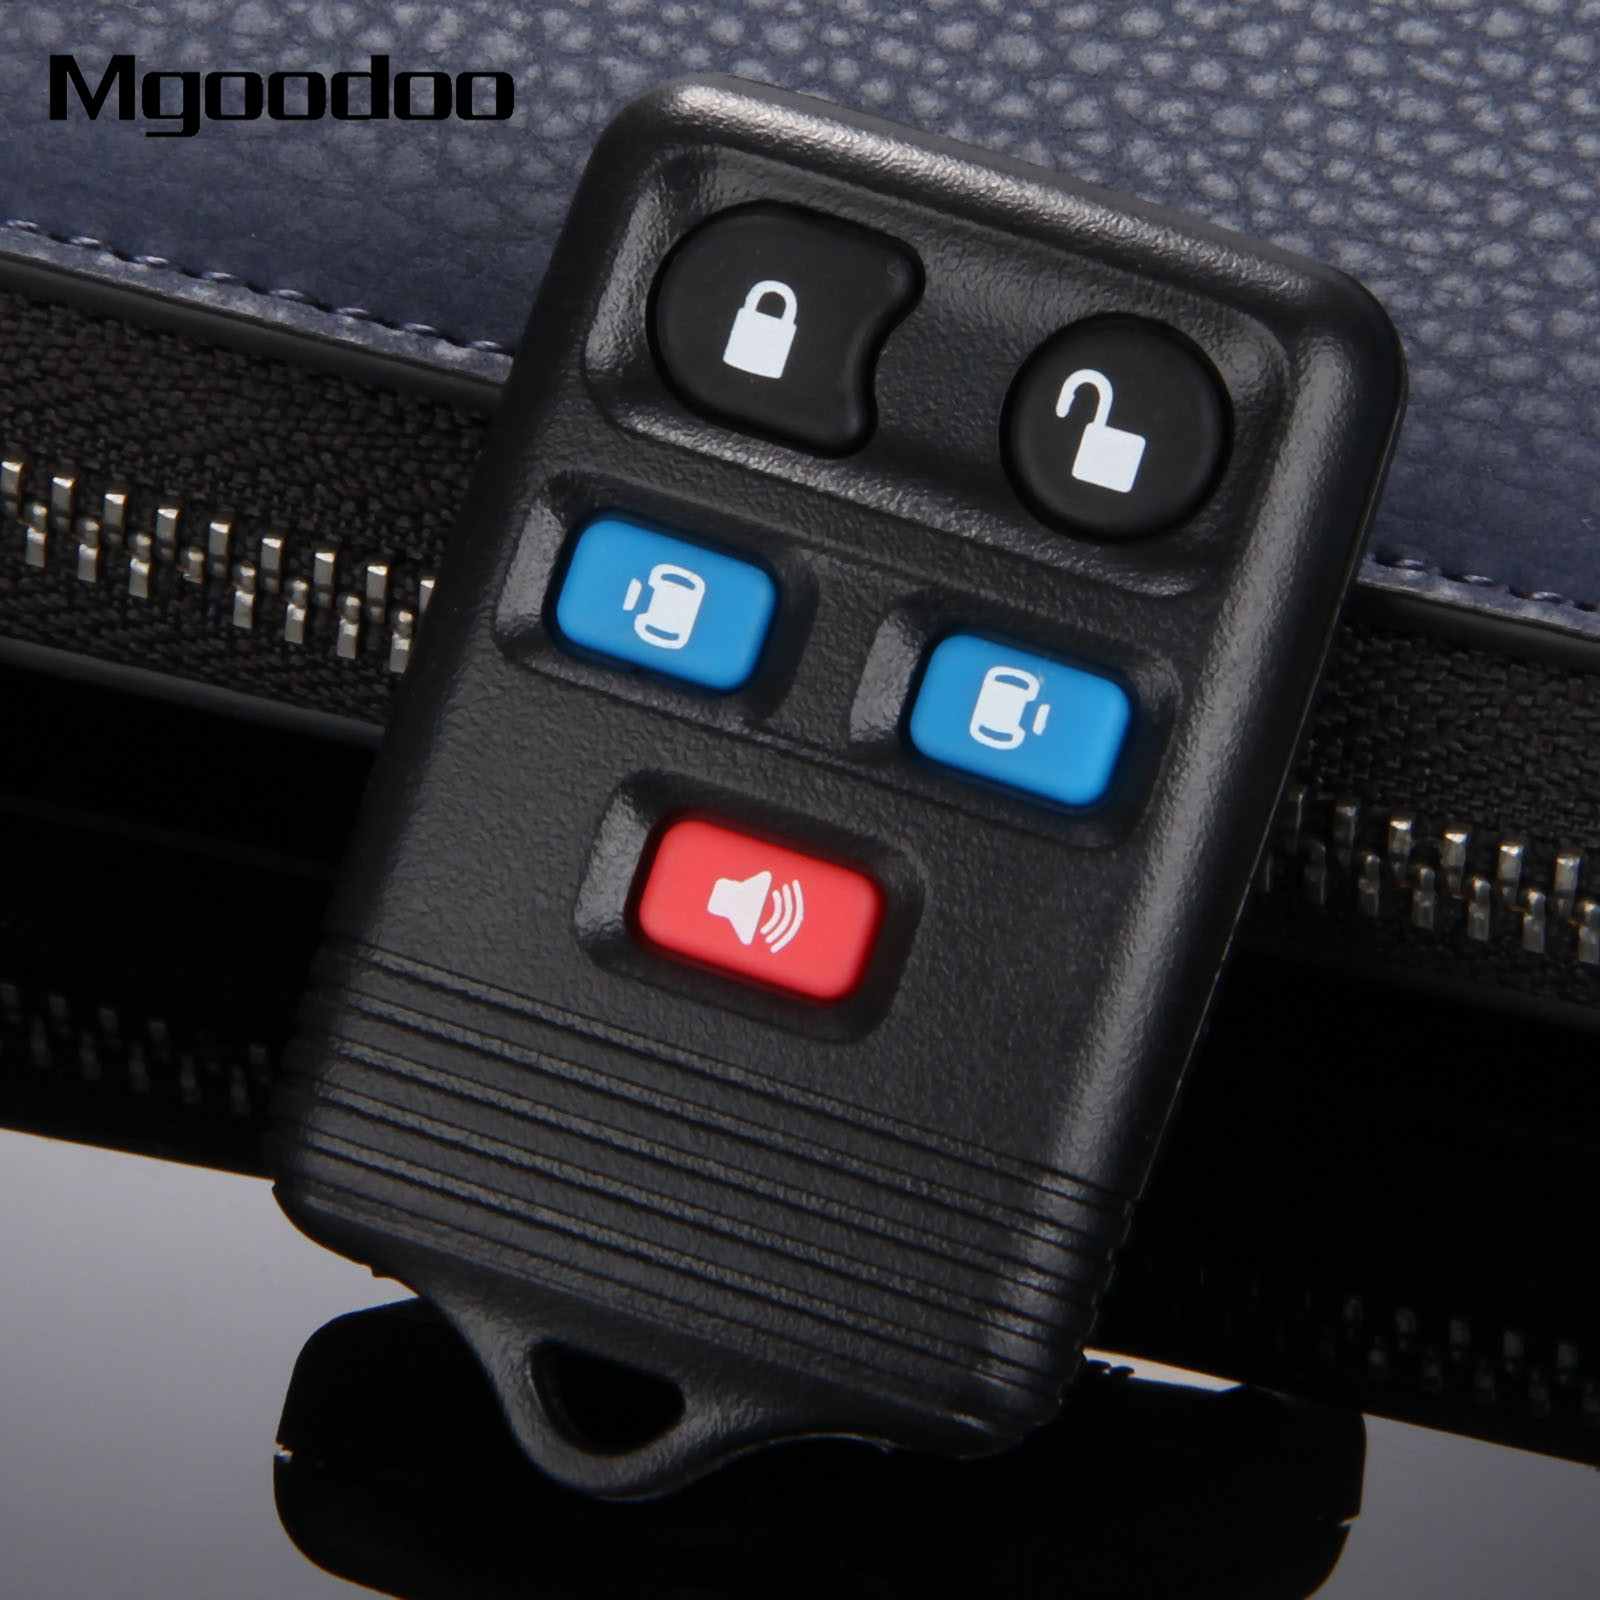 Mgoodoo 5 buttons keyless entry remote key shell case cover replacement key fob for ford freestar